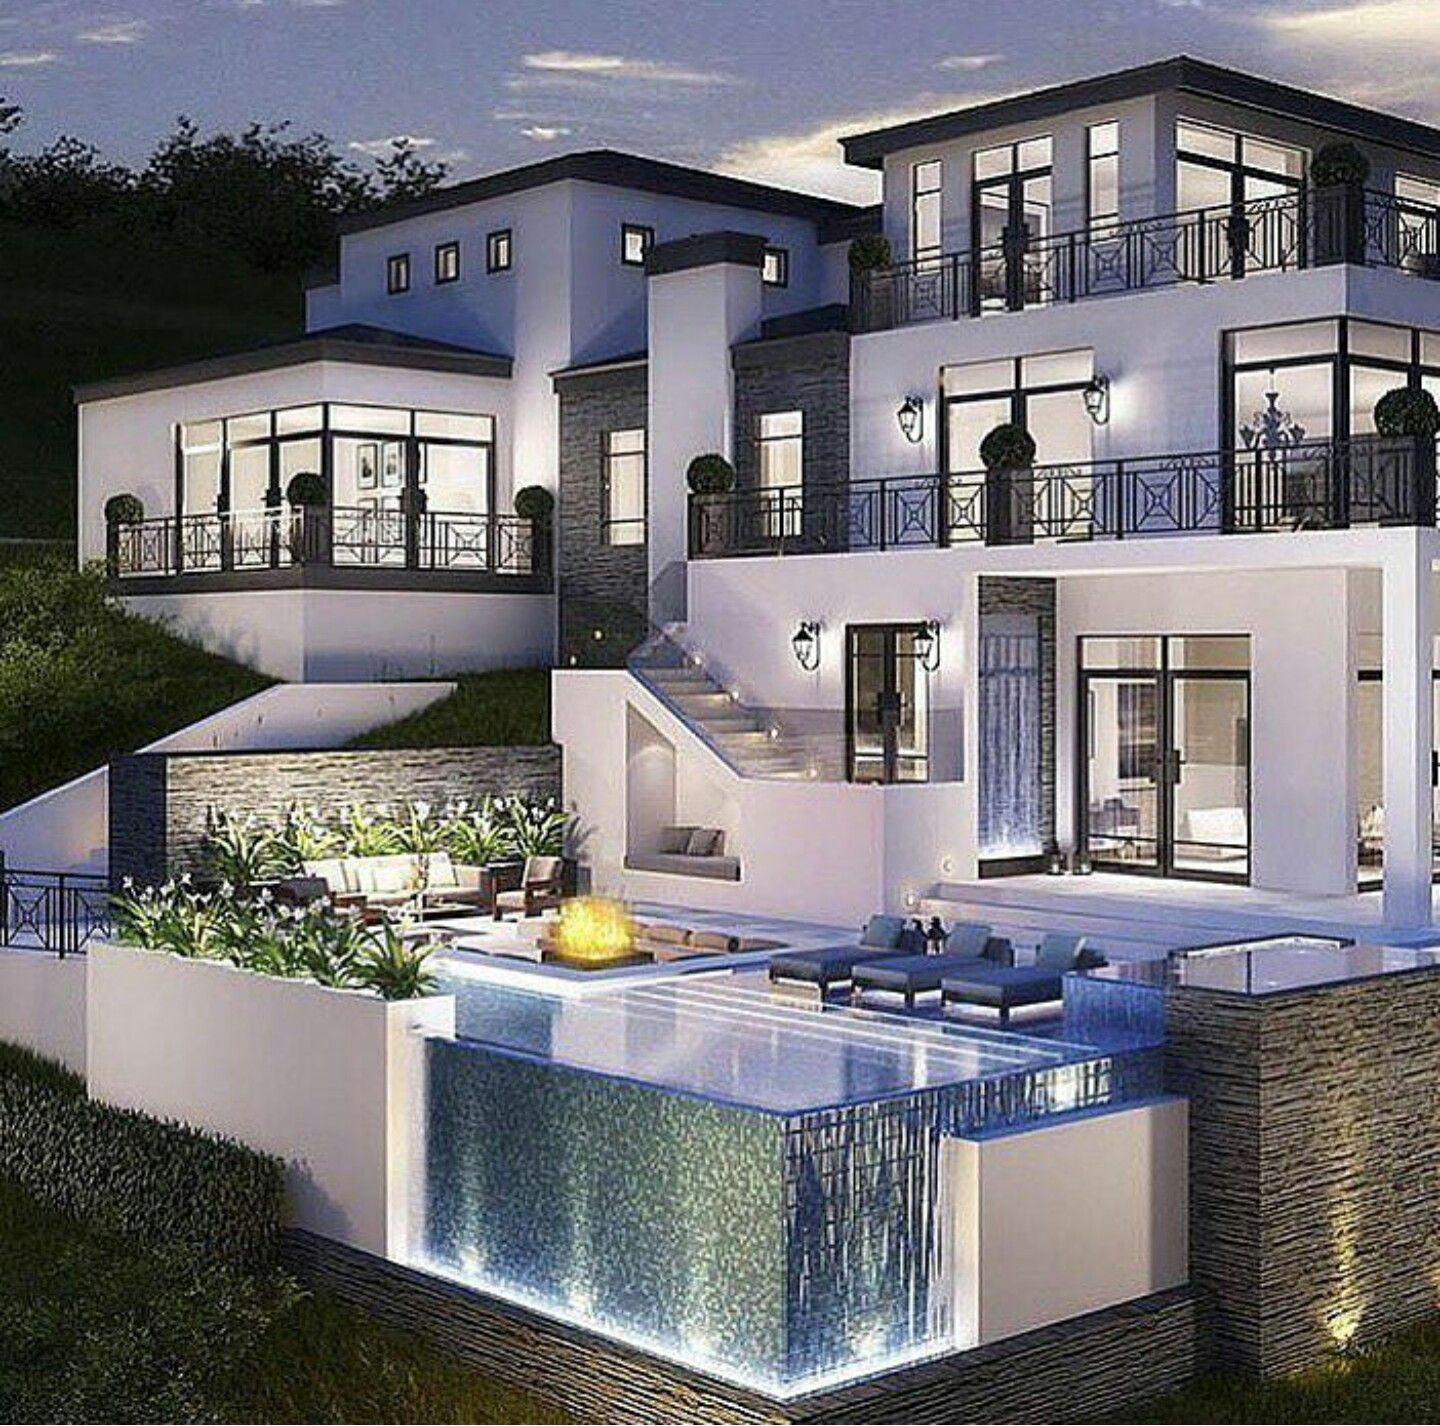 Amazing los angeles hollywood hills mansion with infinity for Images of front view of beautiful modern houses